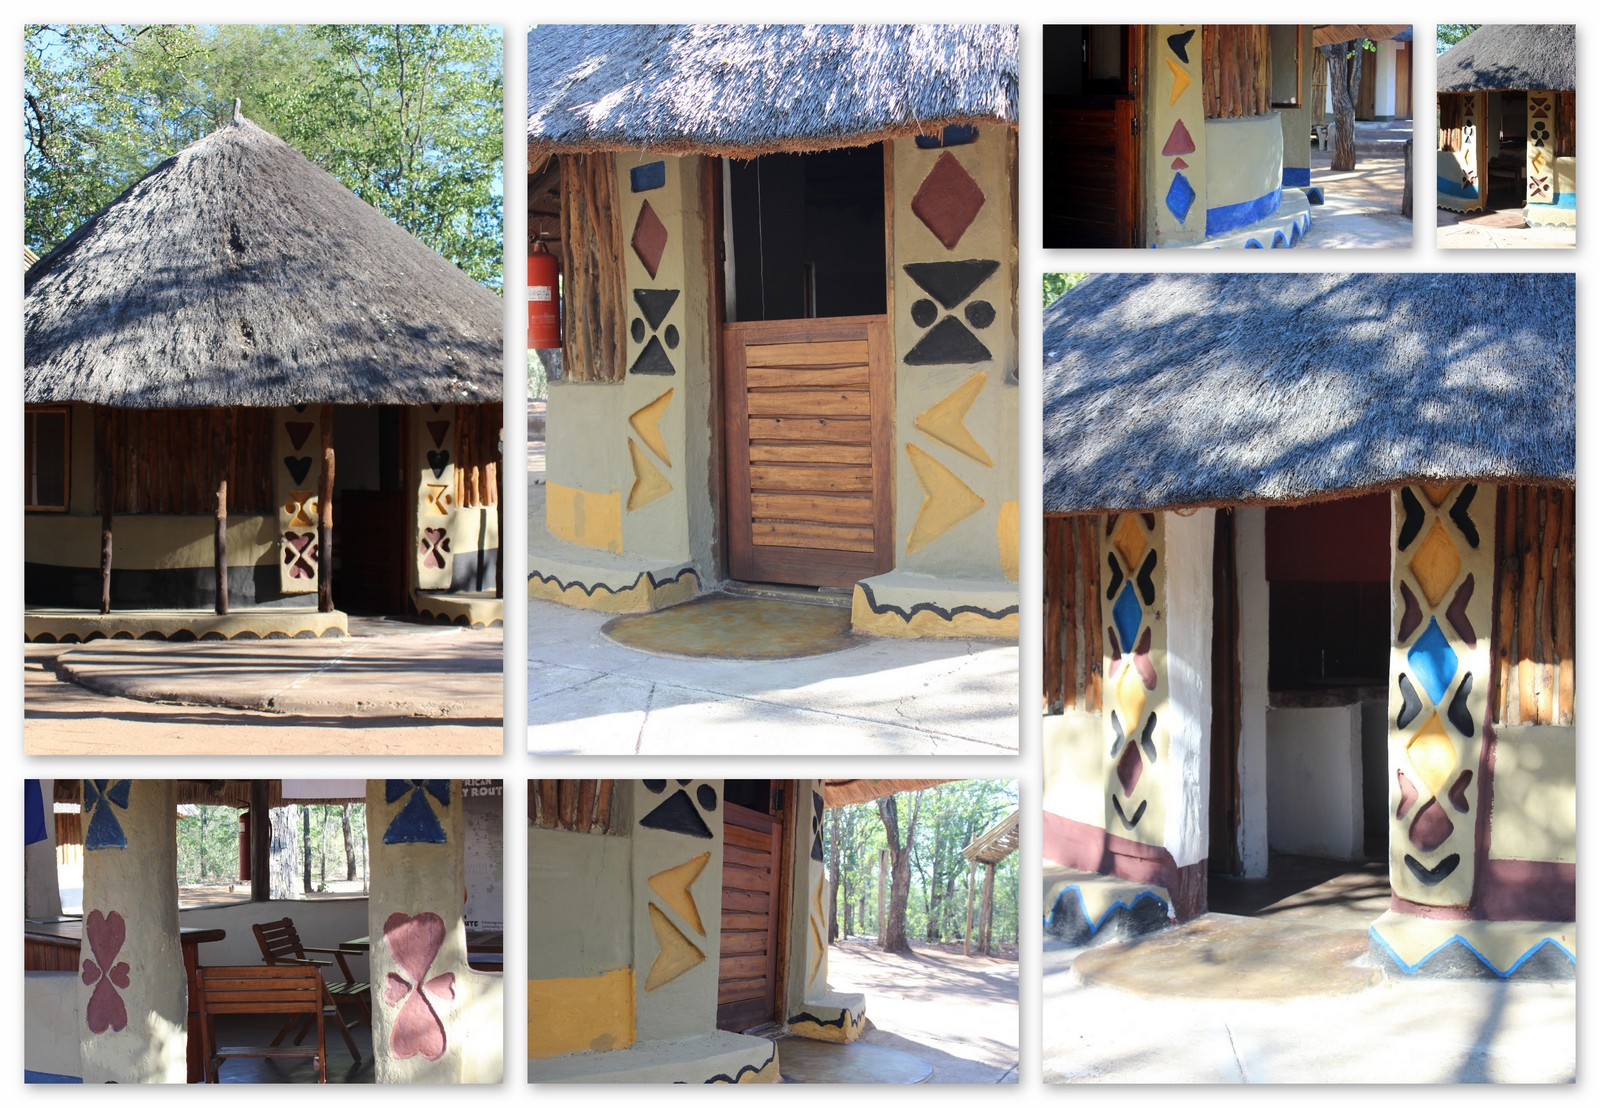 Units repainted in traditional Tsonga style